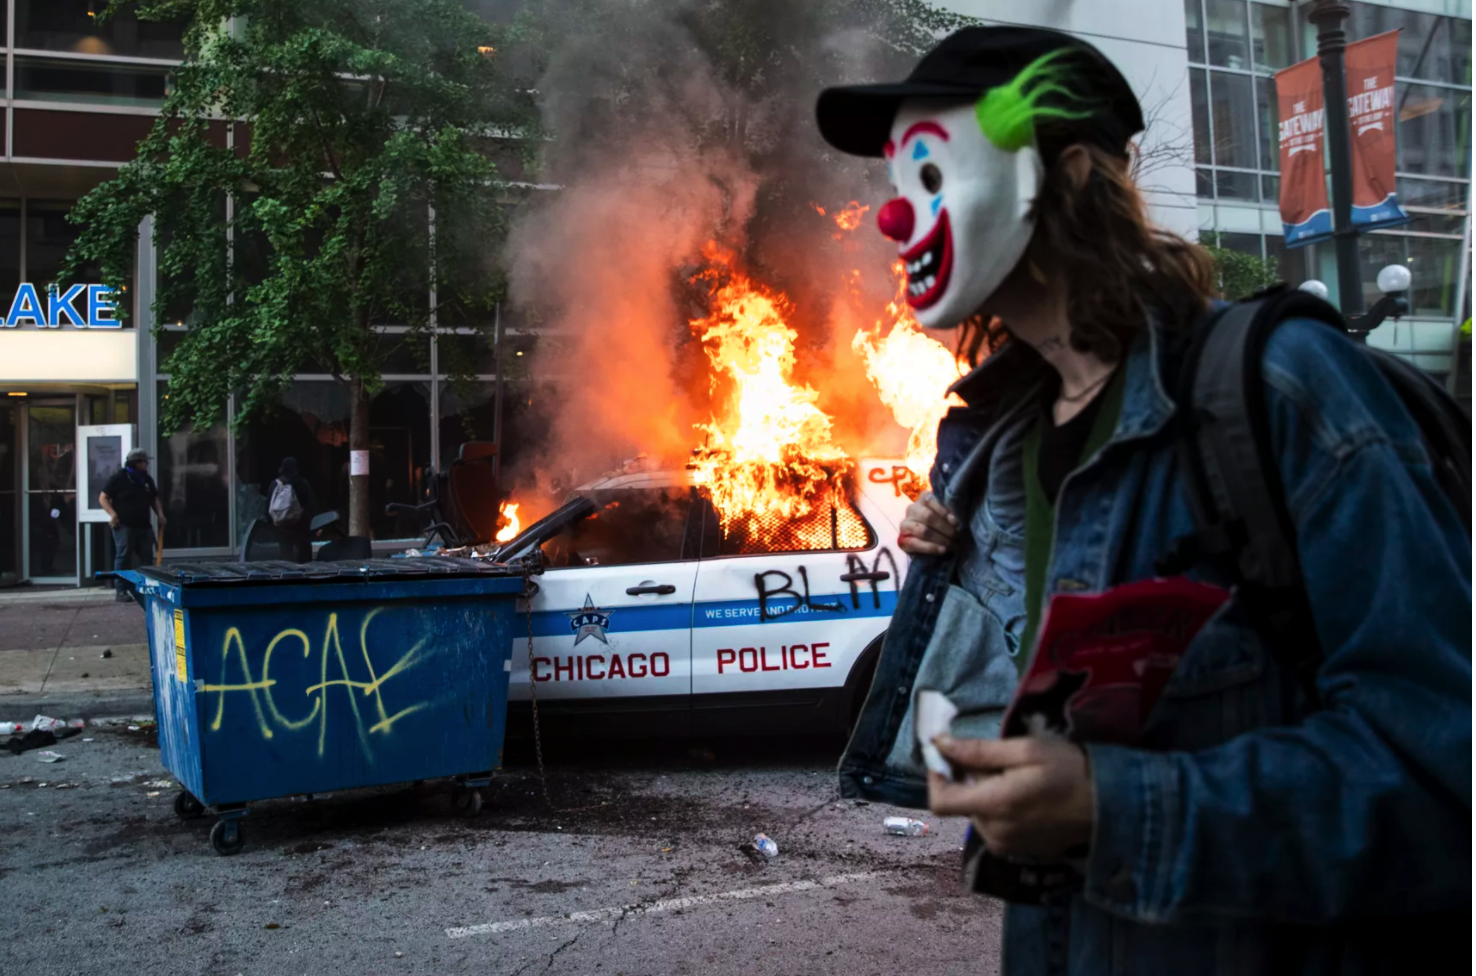 A man in a Joker mask stands near a burning Chicago police squad on May 30 in the 200 block of North State. The man was later identified as Timothy O'Donnell in a federal complaint charging him with arson.